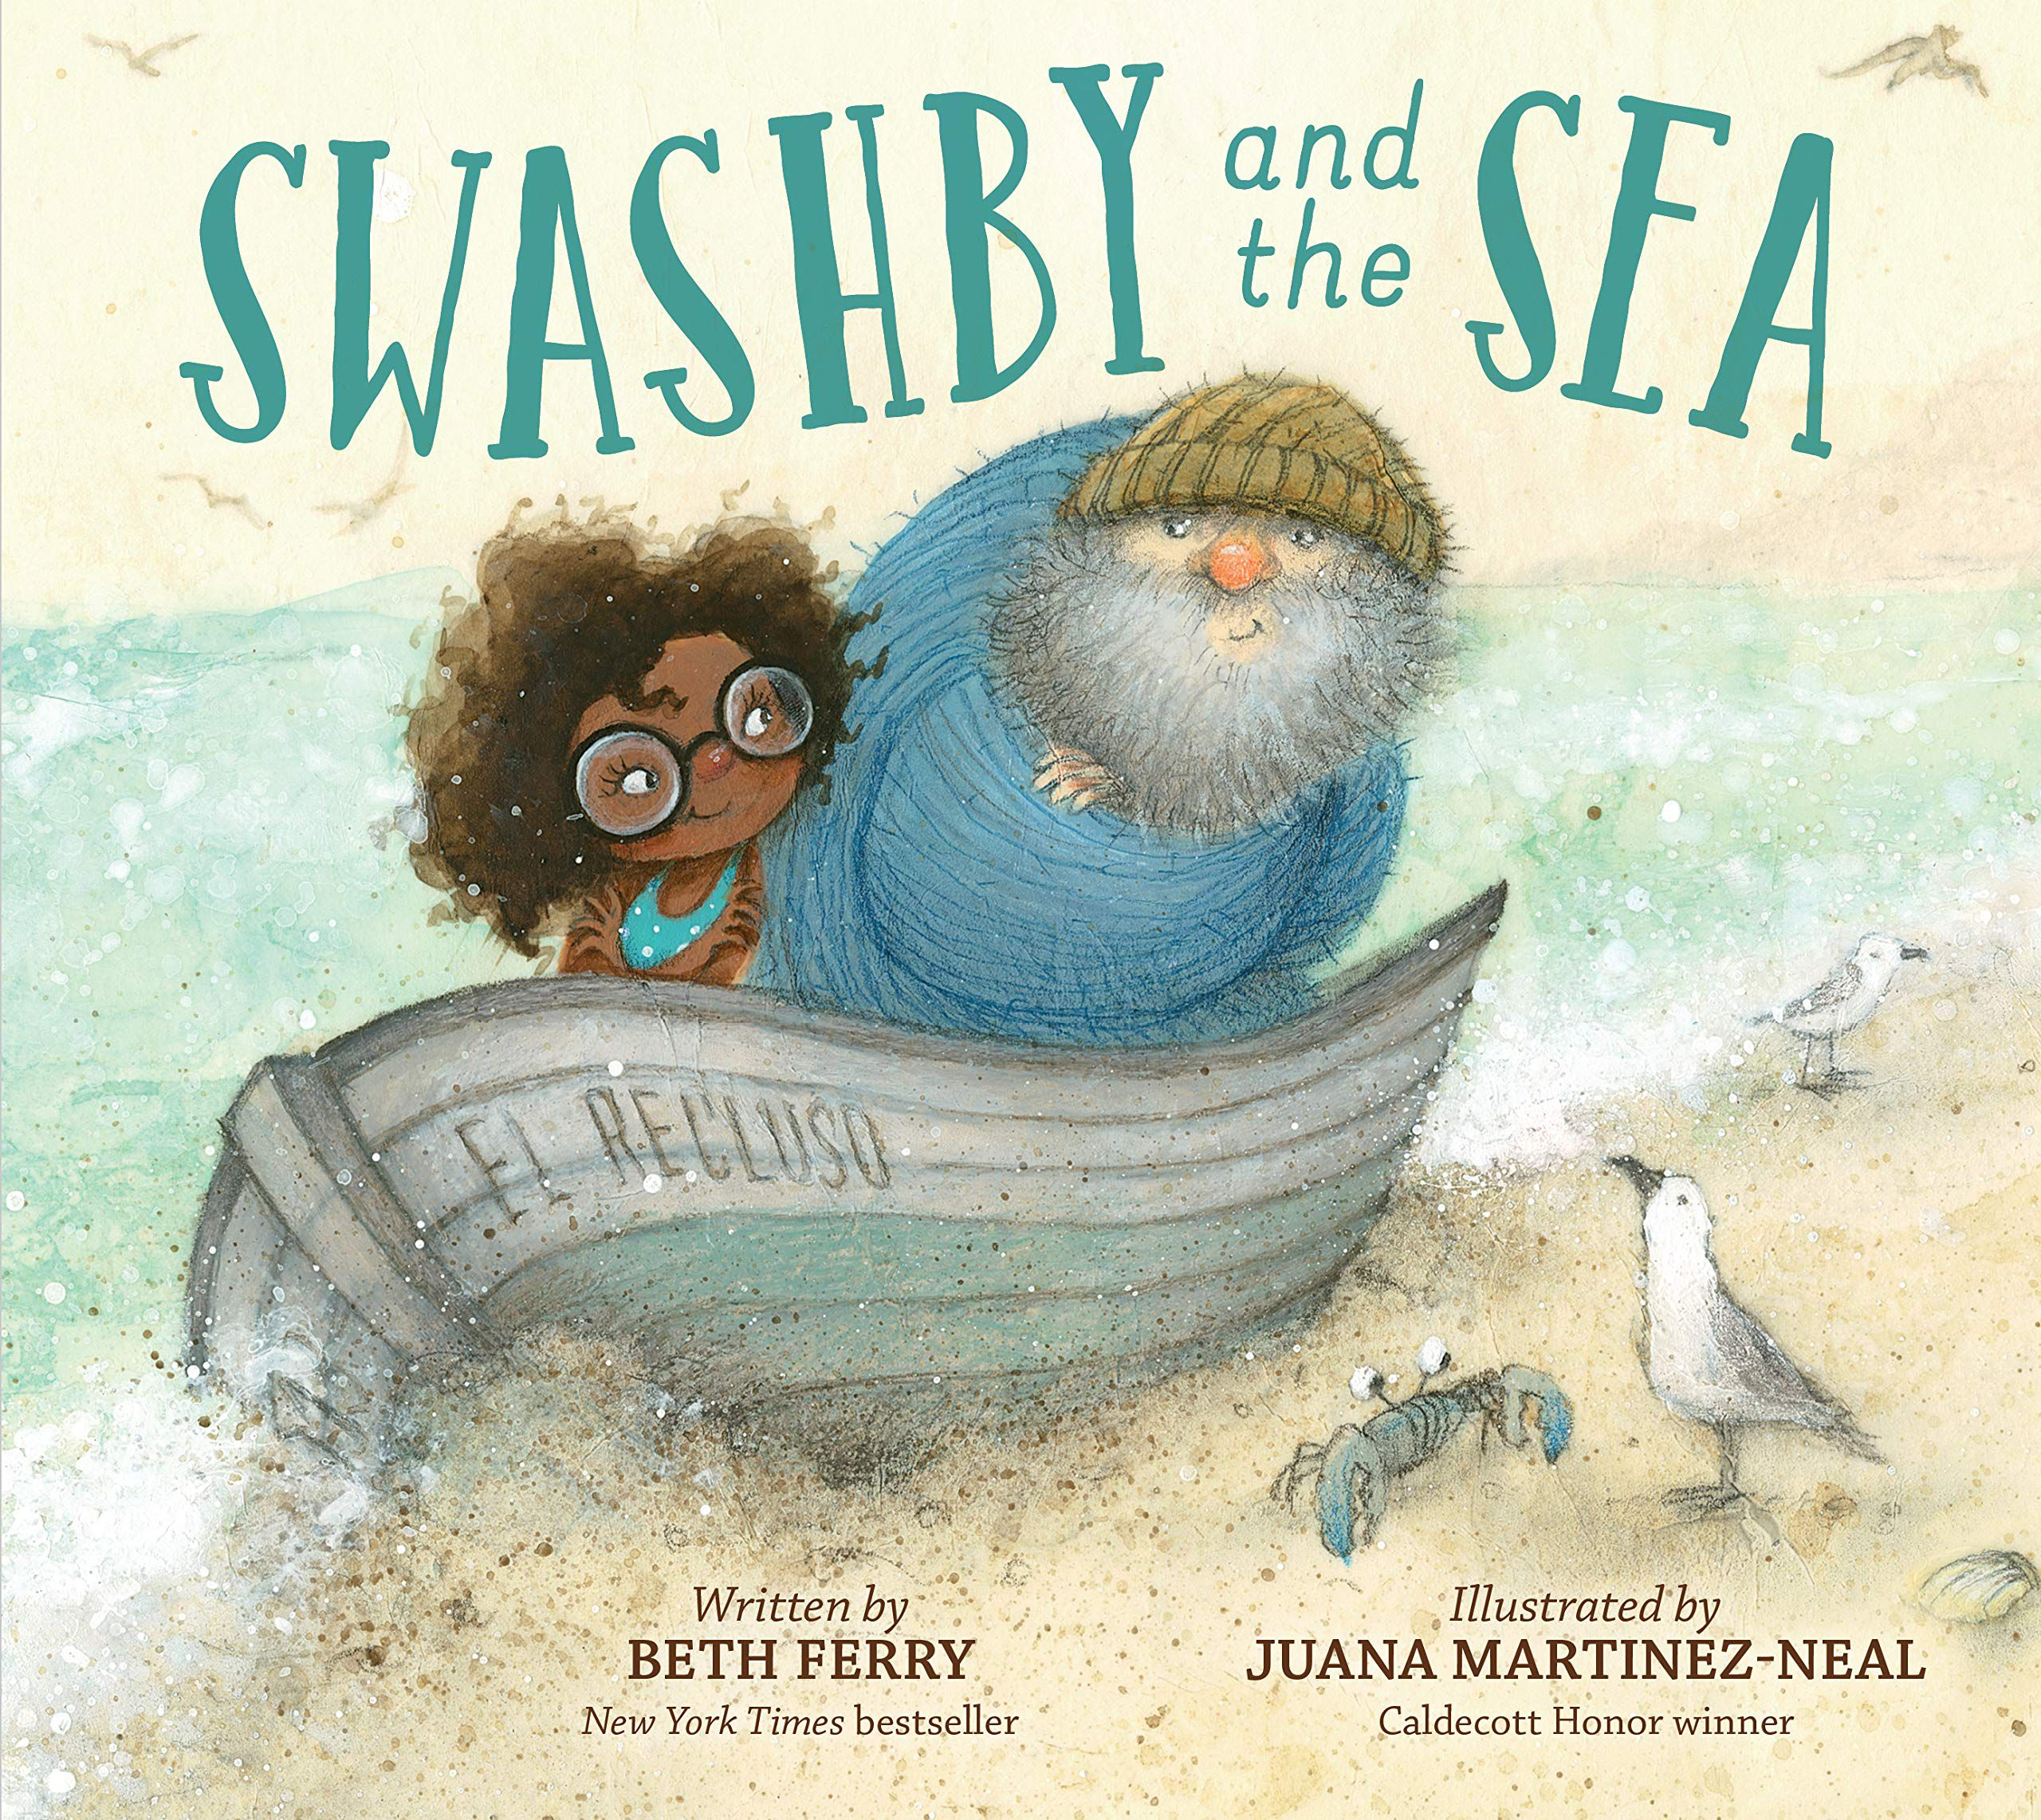 Swashby and the Sea cover